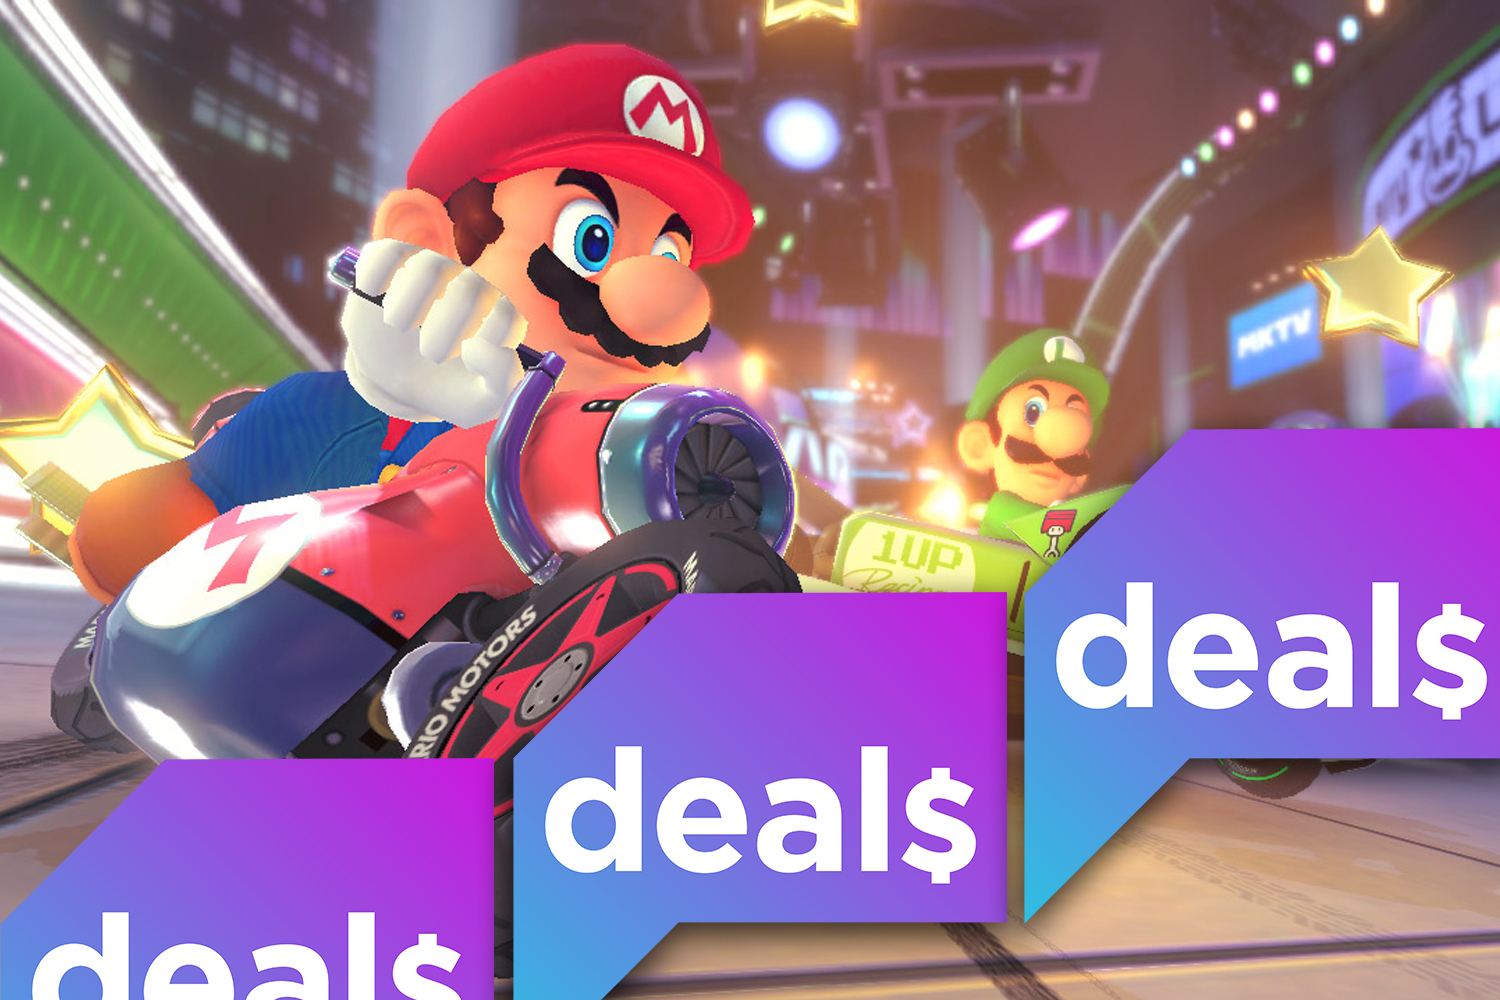 Nintendo Switch and PC games on sale, Razer accessory discounts, and more of the week's best deals